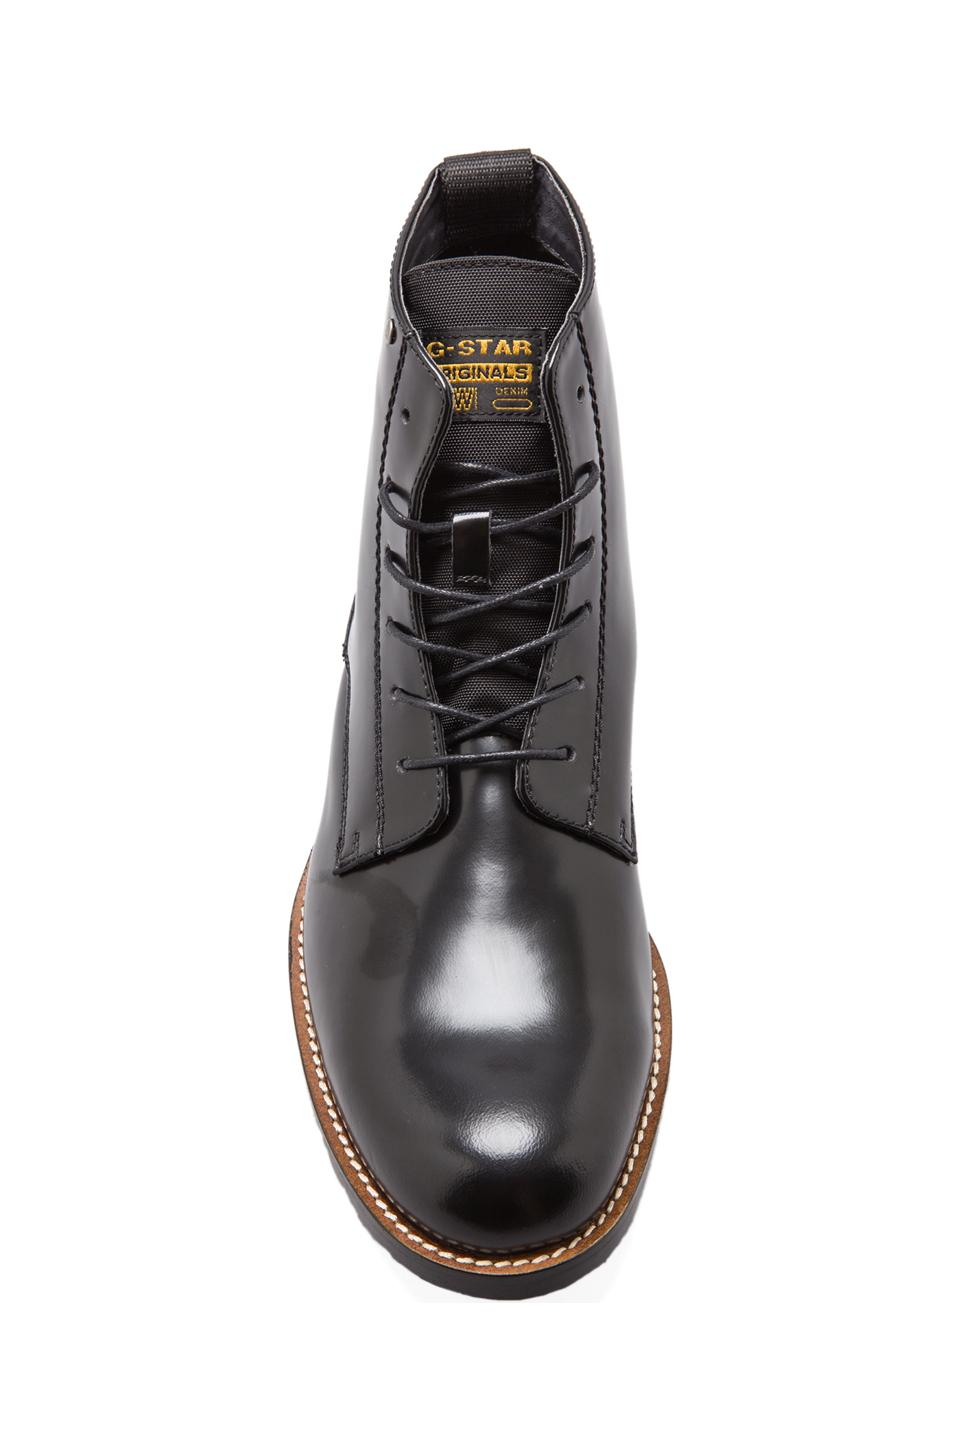 G-Star Manor Dryden Hi Shine Boot in Black Textured Leather